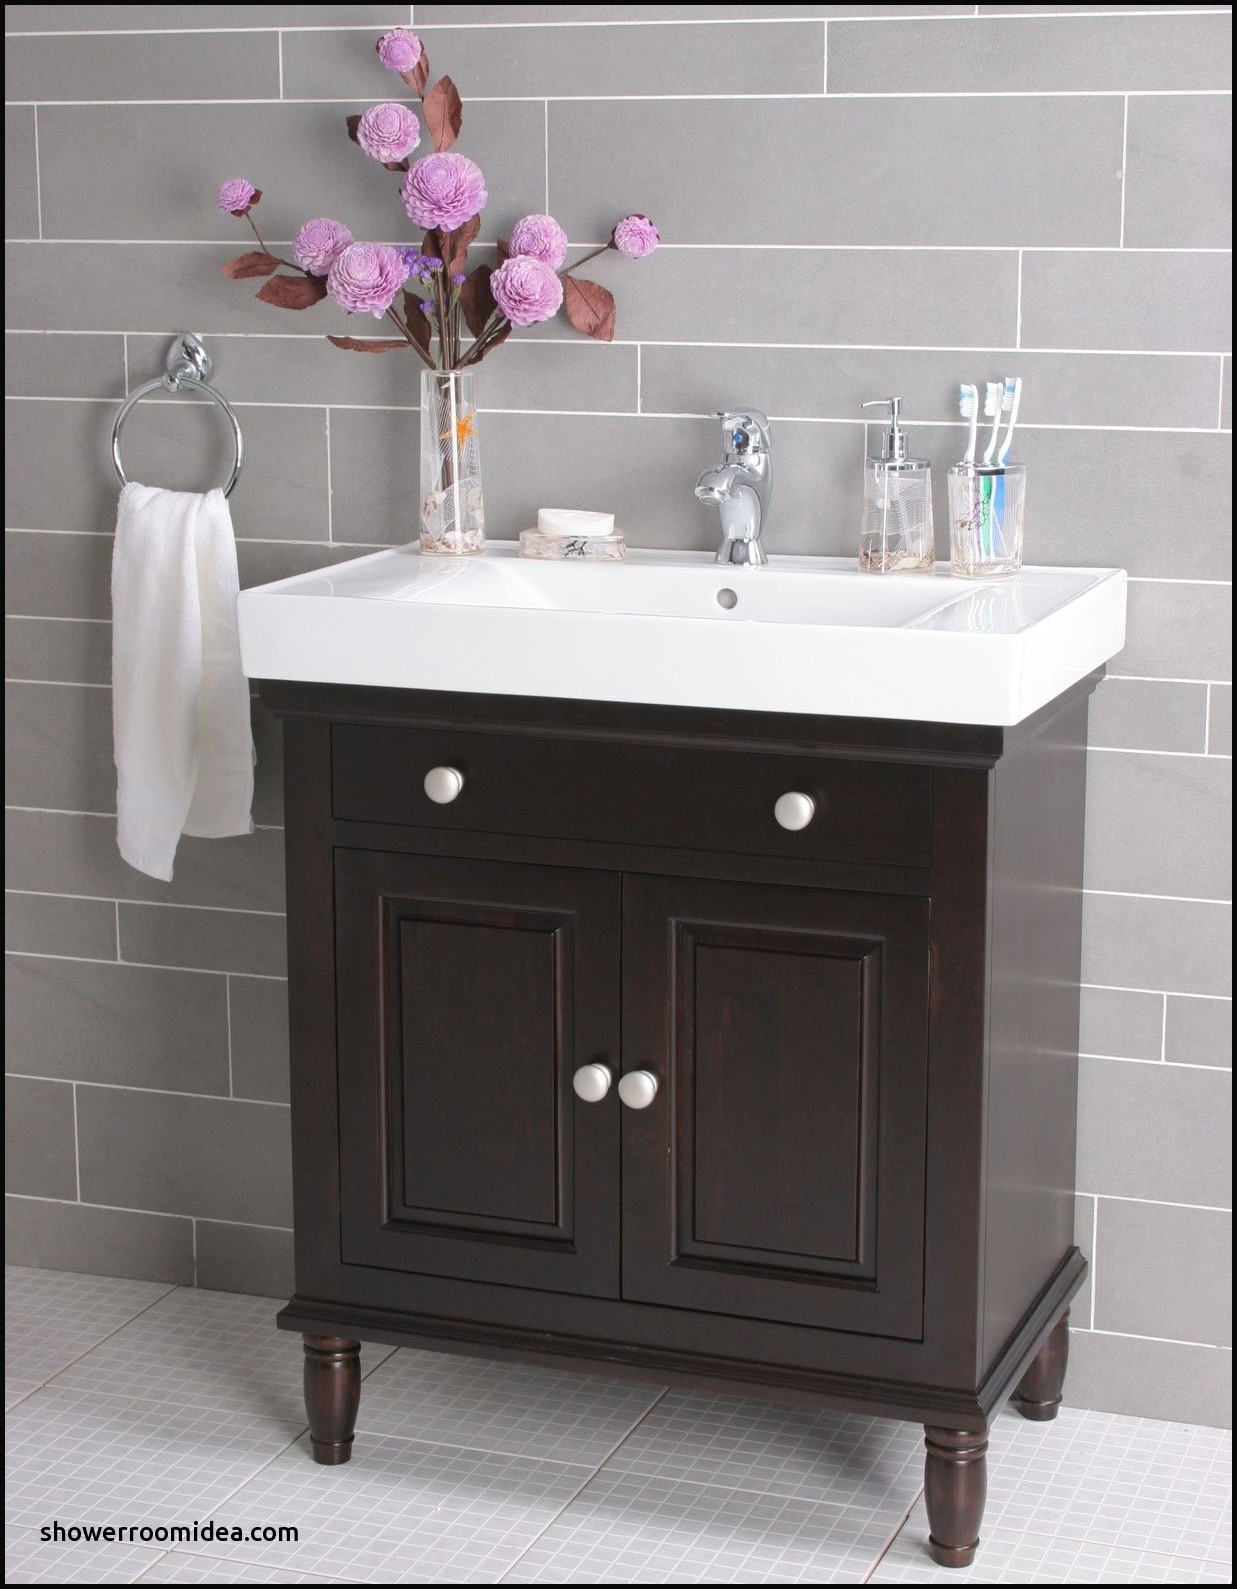 Bathroom Vanities at Menards Cute Inspirational Menards Bathroom Vanity Lights Shower Room Idea Plan